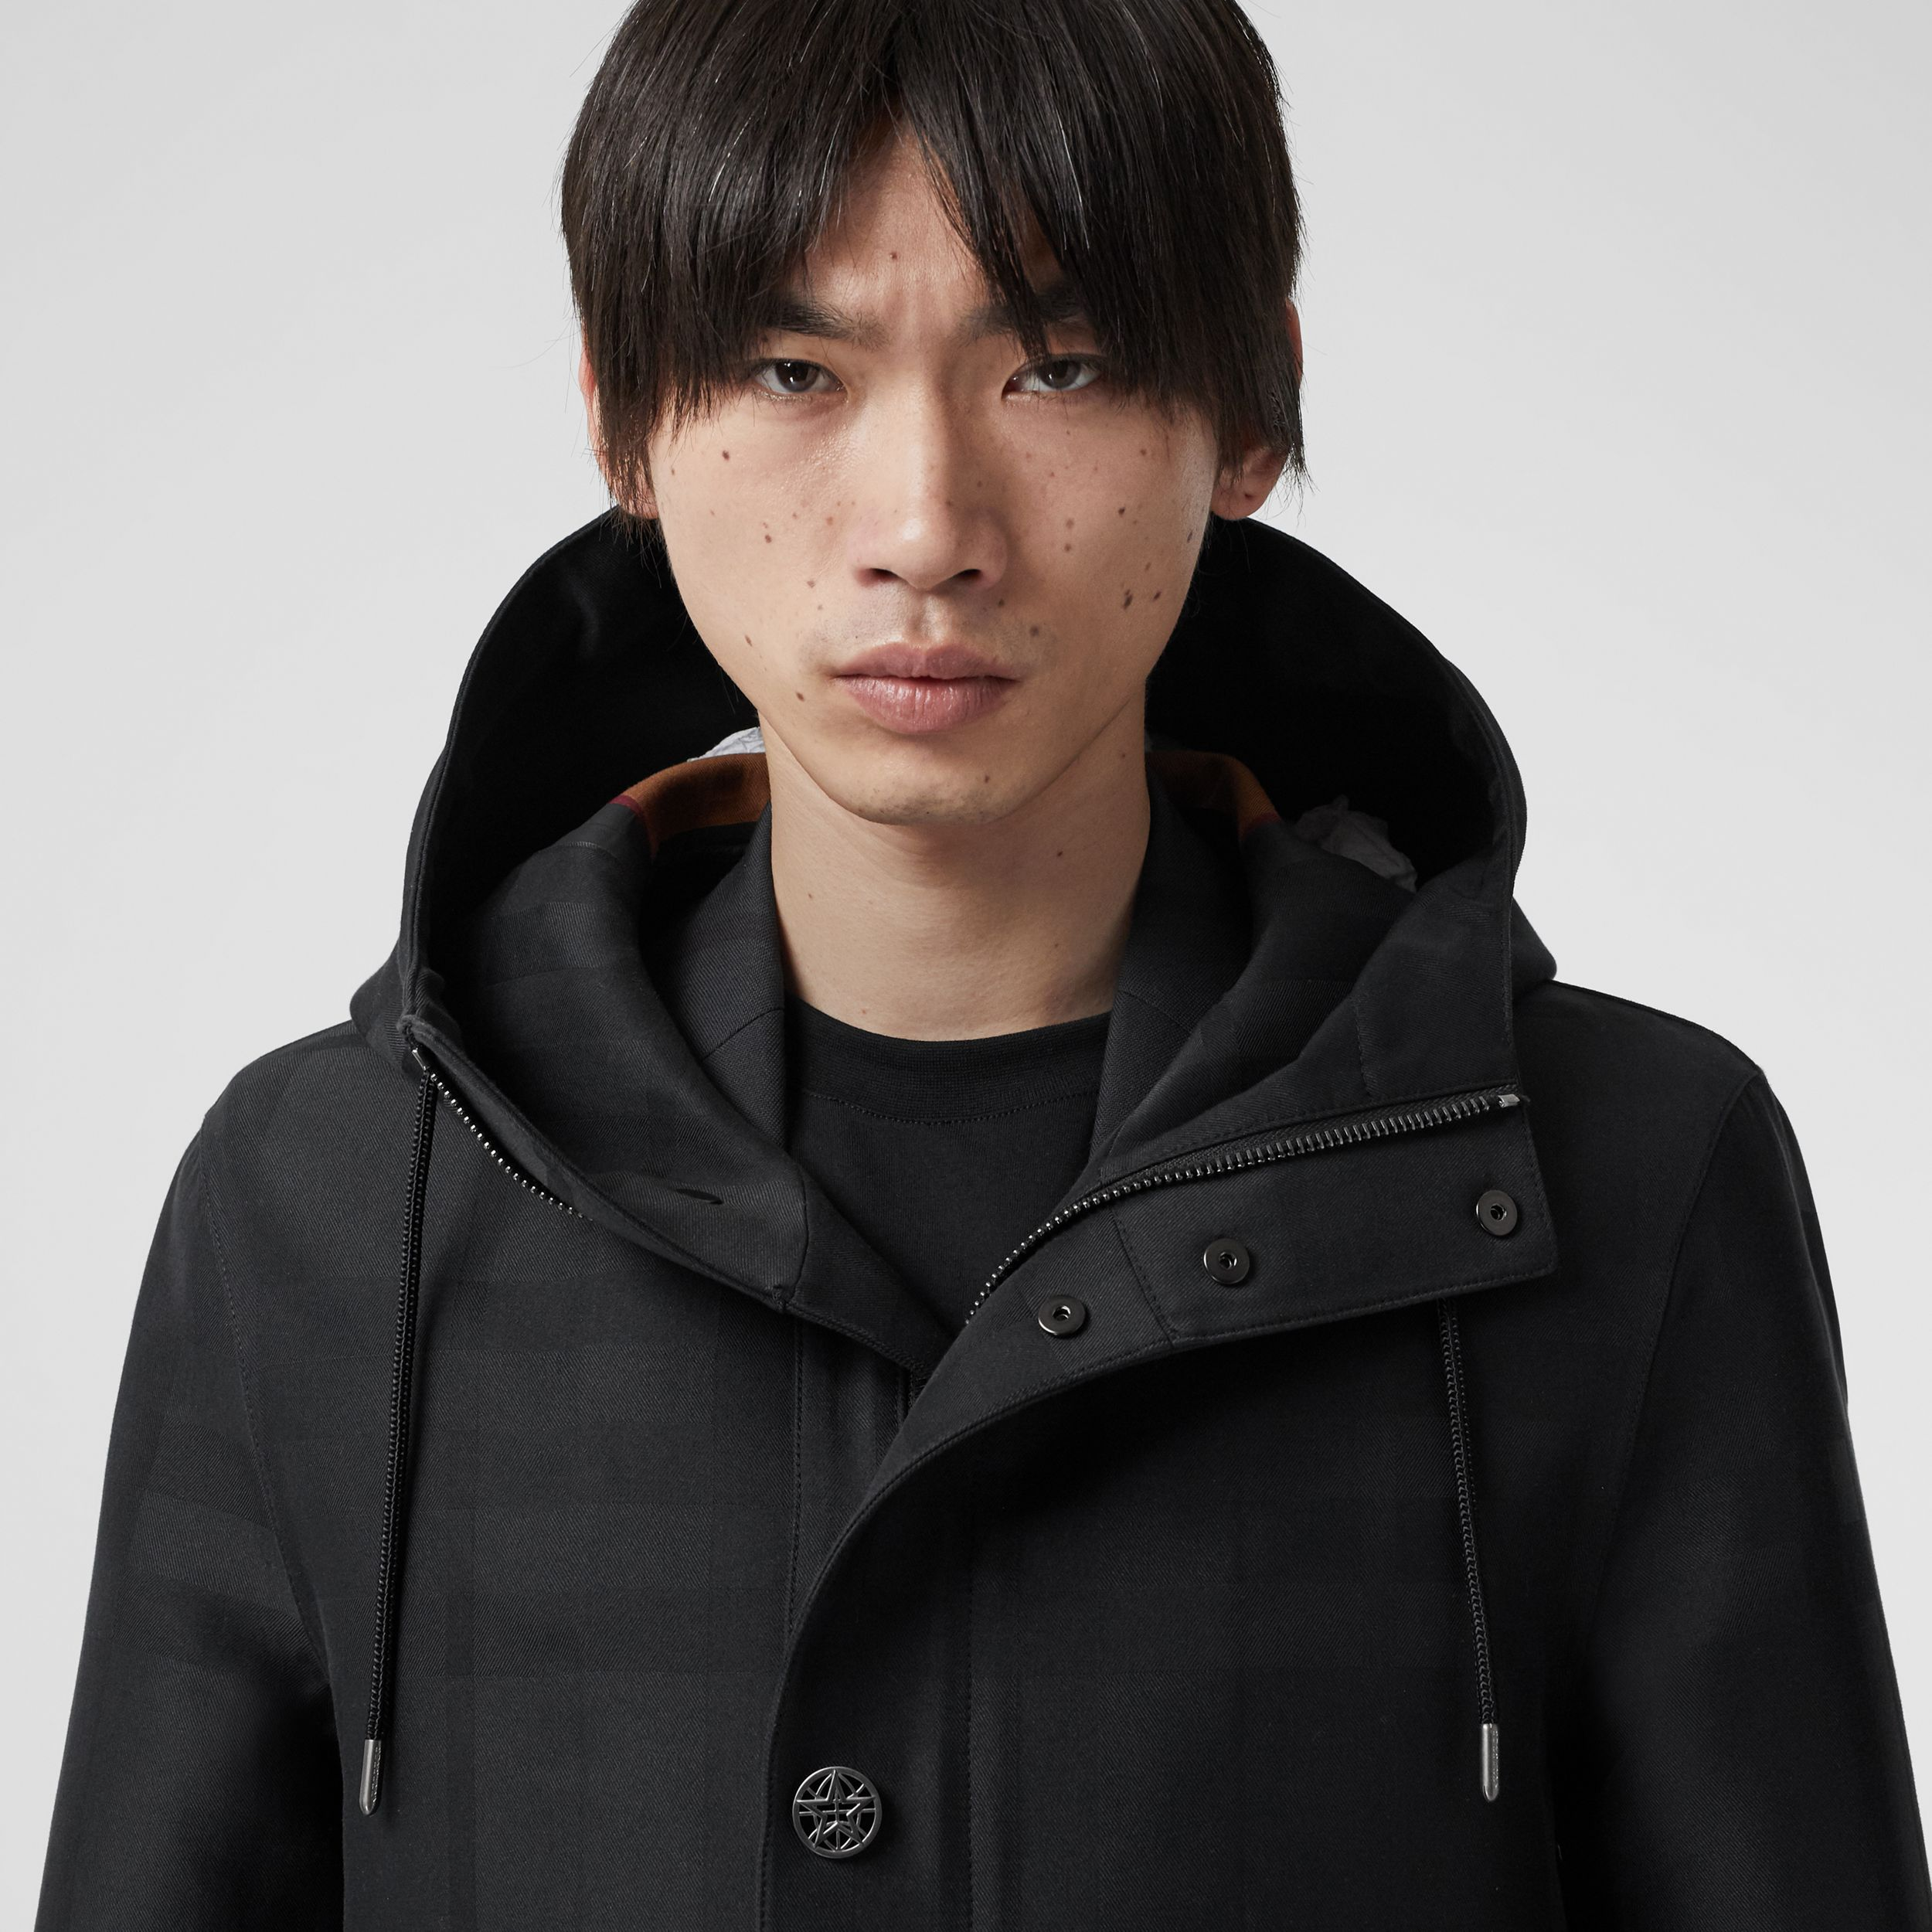 Globe Graphic Detail Check Technical Cotton Coat in Black - Men | Burberry Canada - 2